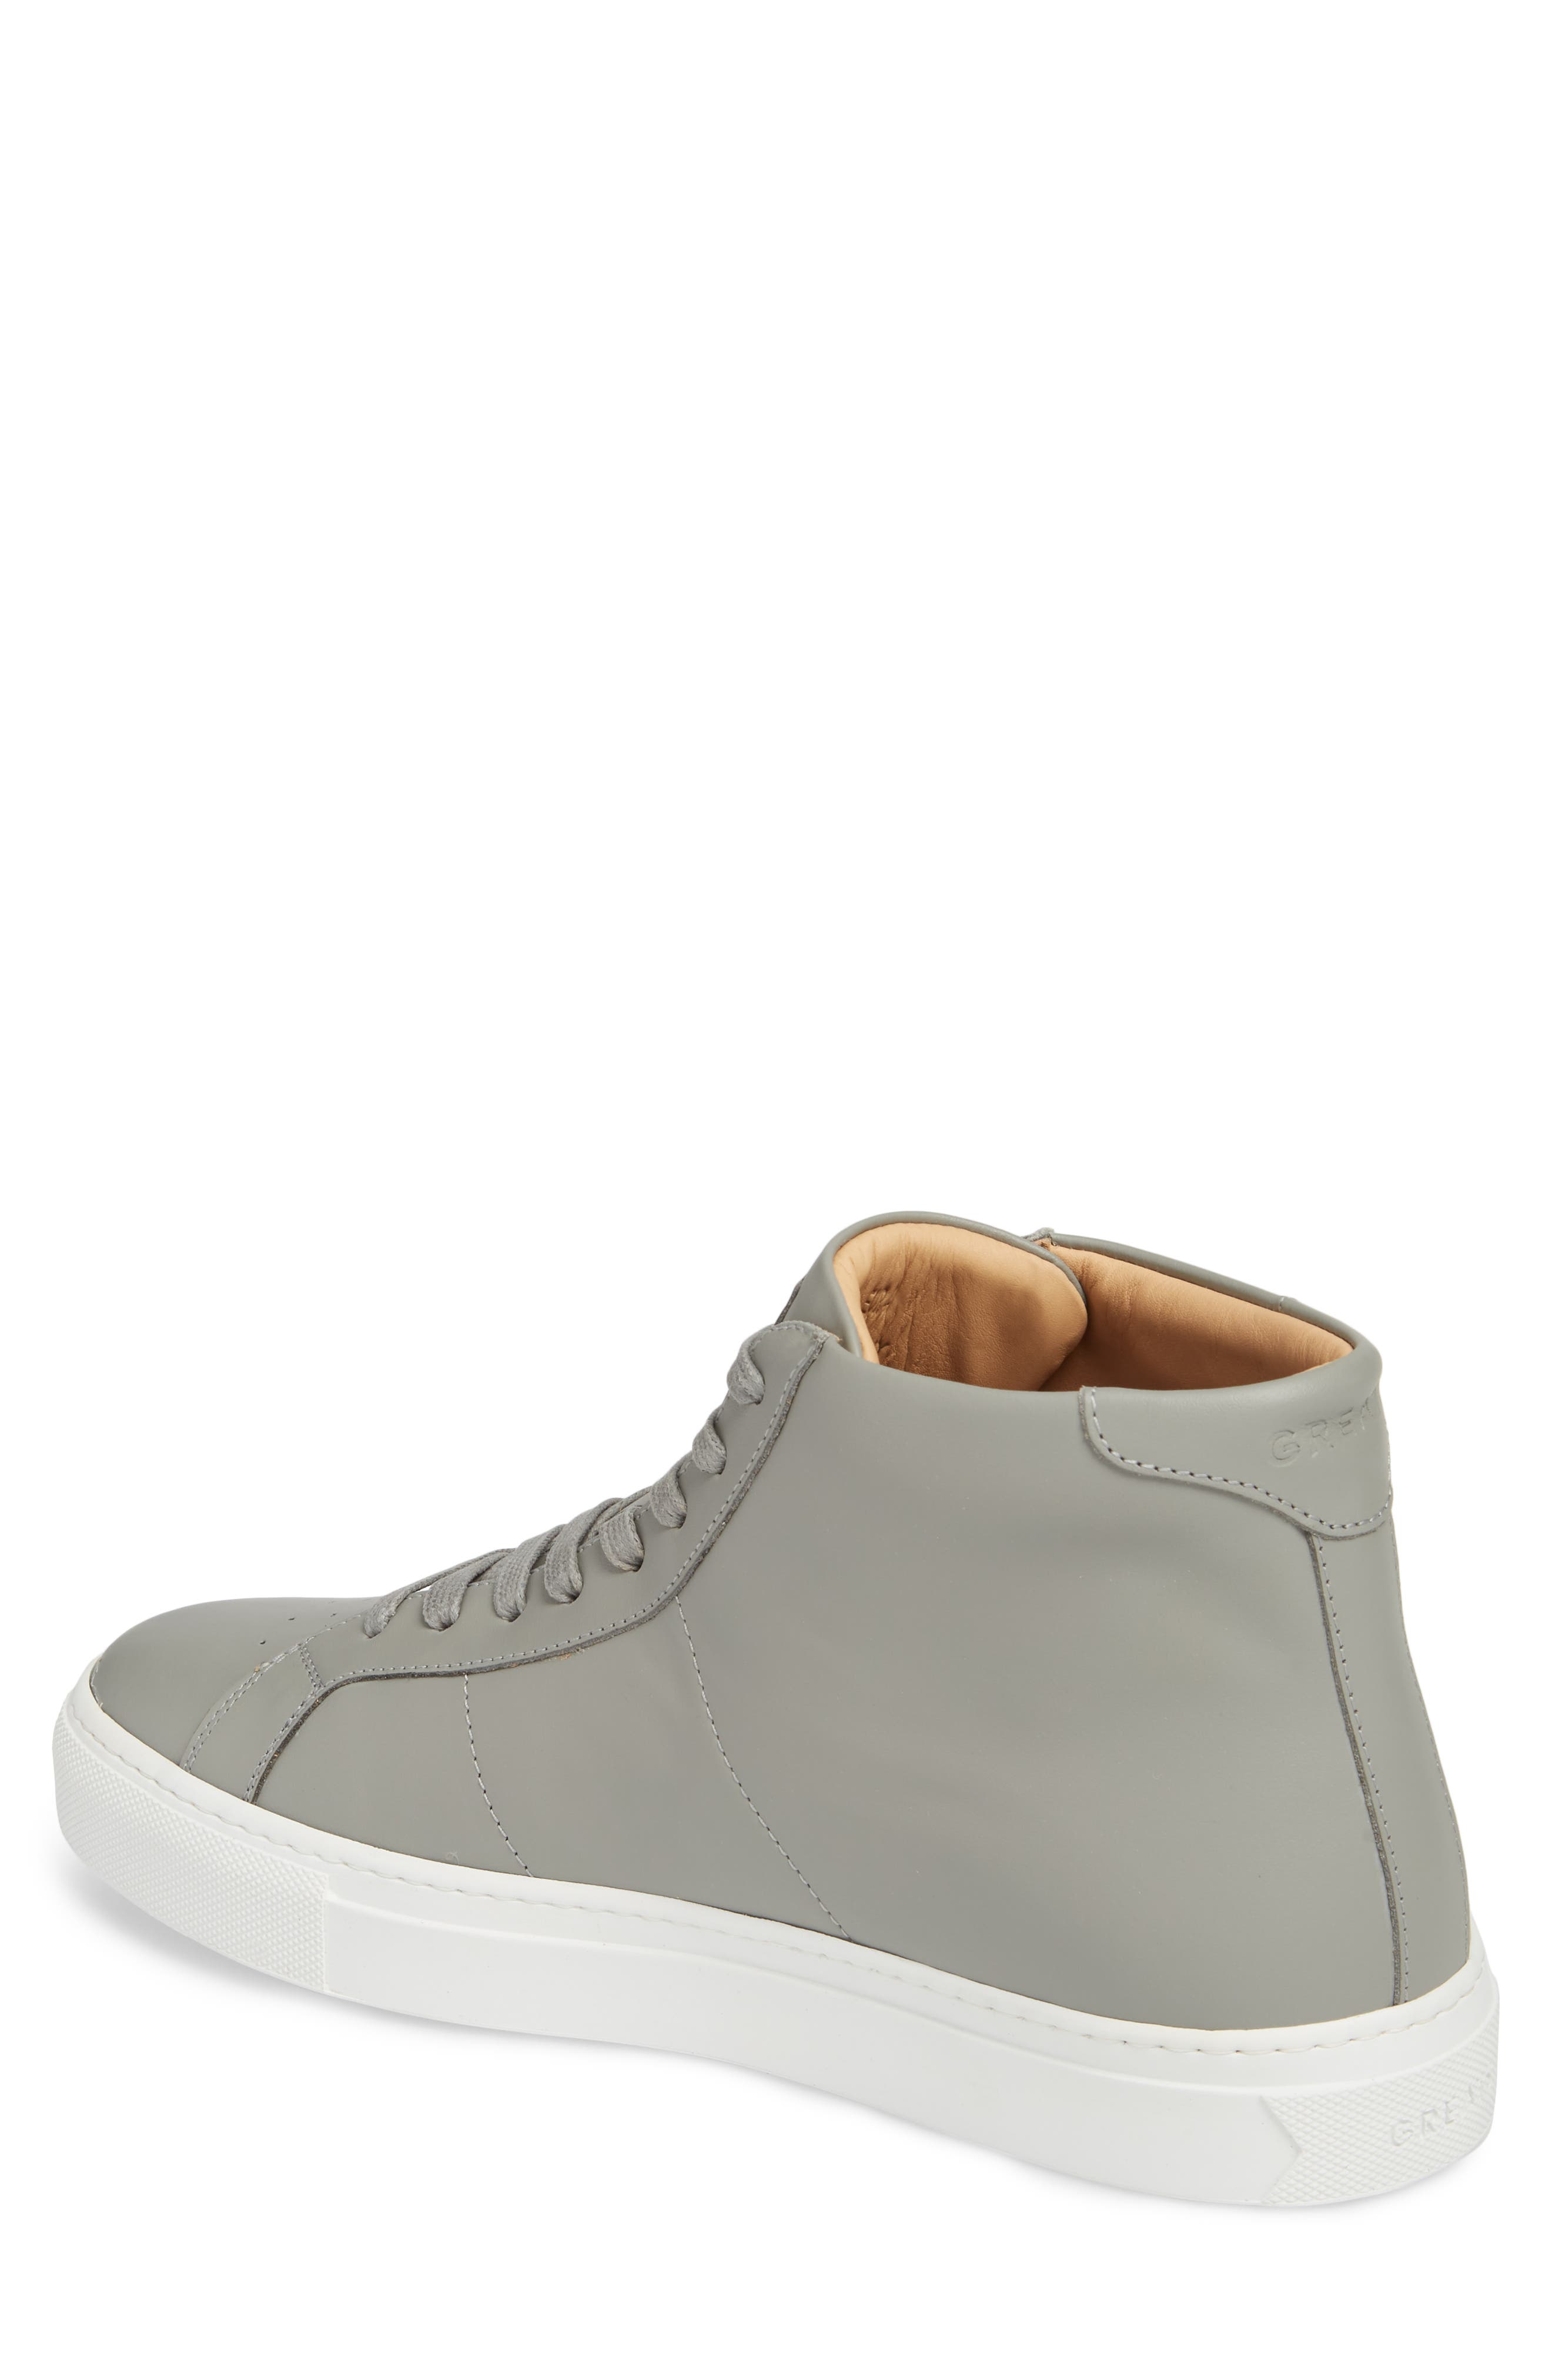 Royale High Top Sneaker,                             Alternate thumbnail 2, color,                             GREY LEATHER